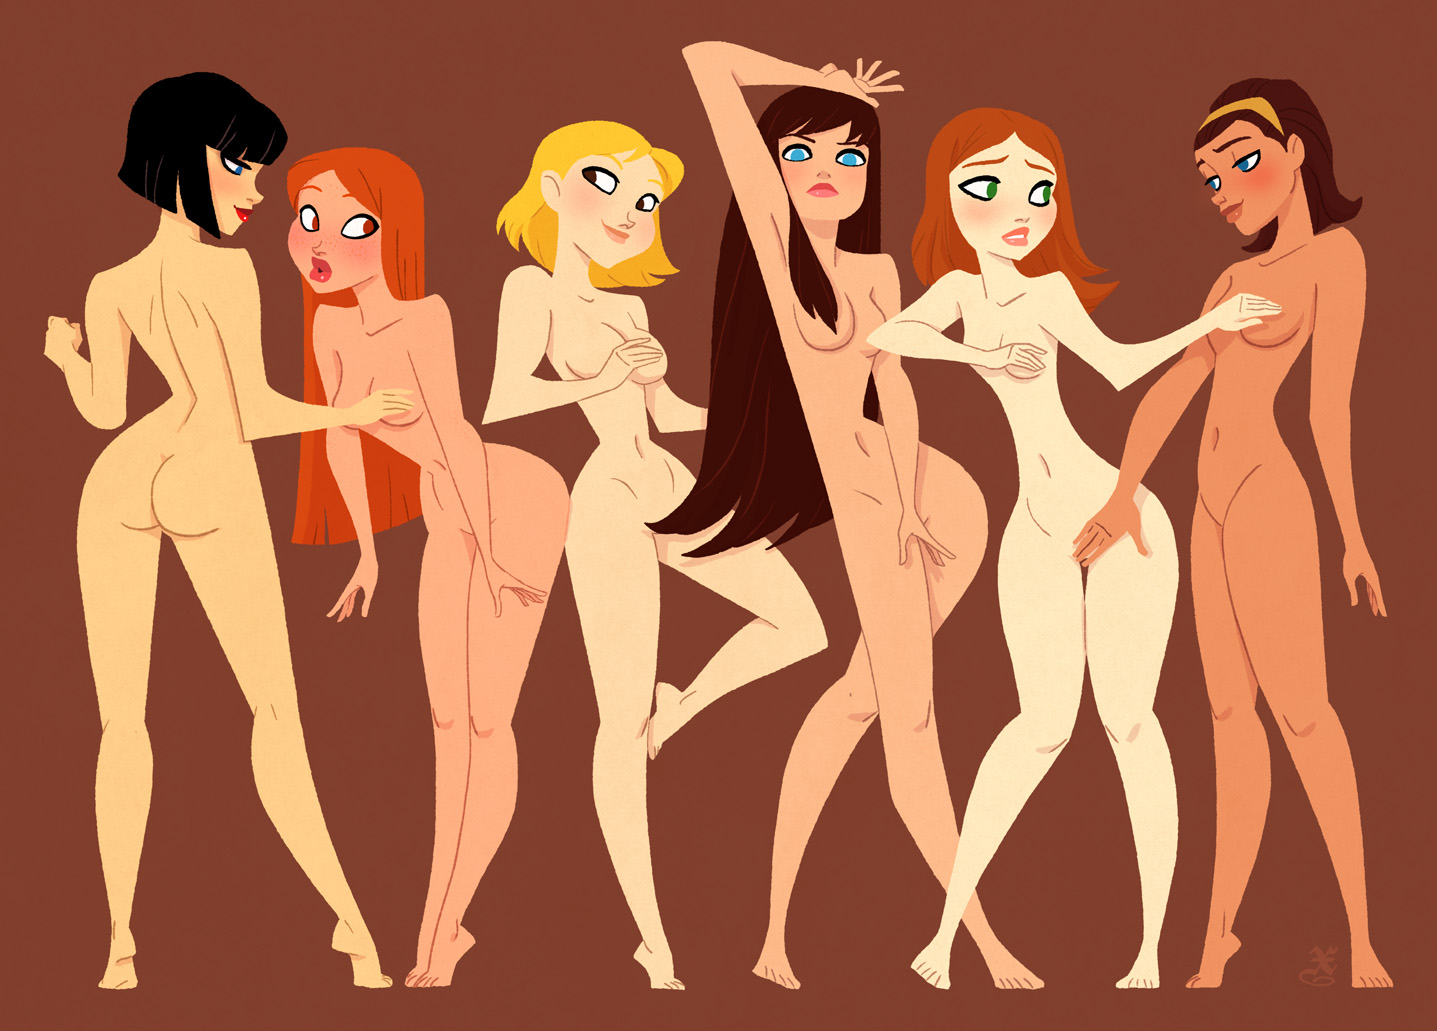 Beautiful naked hot cartoon woman images exposed pic